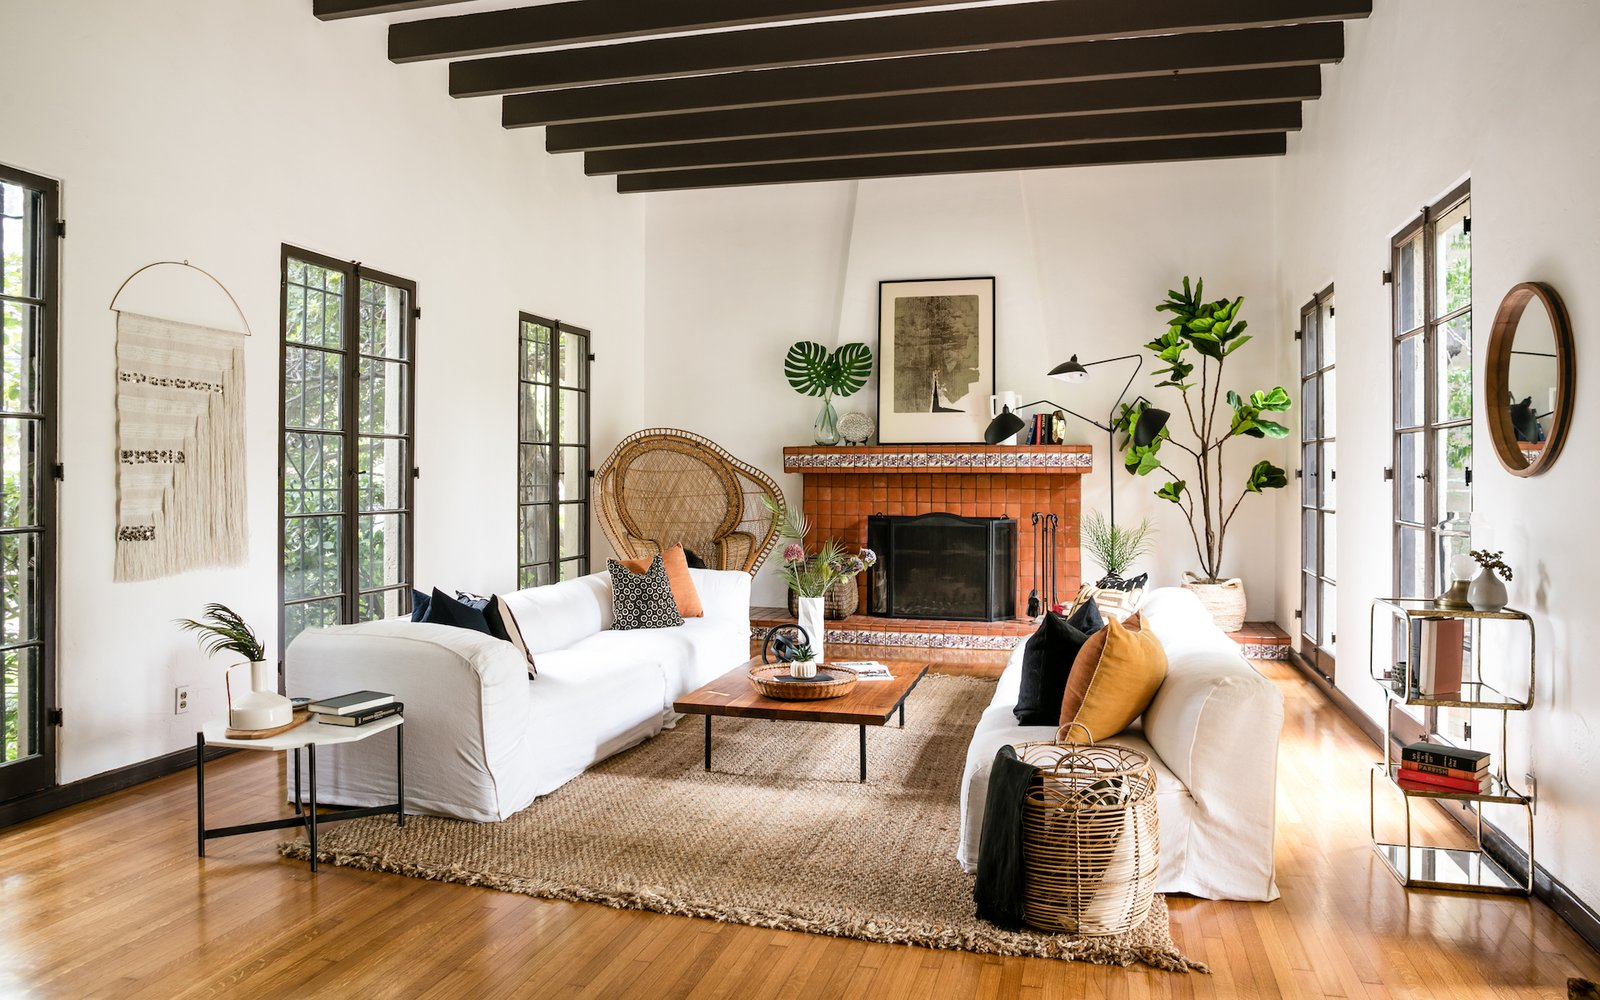 Own This Spacious Spanish Revival Home In LA For 295M